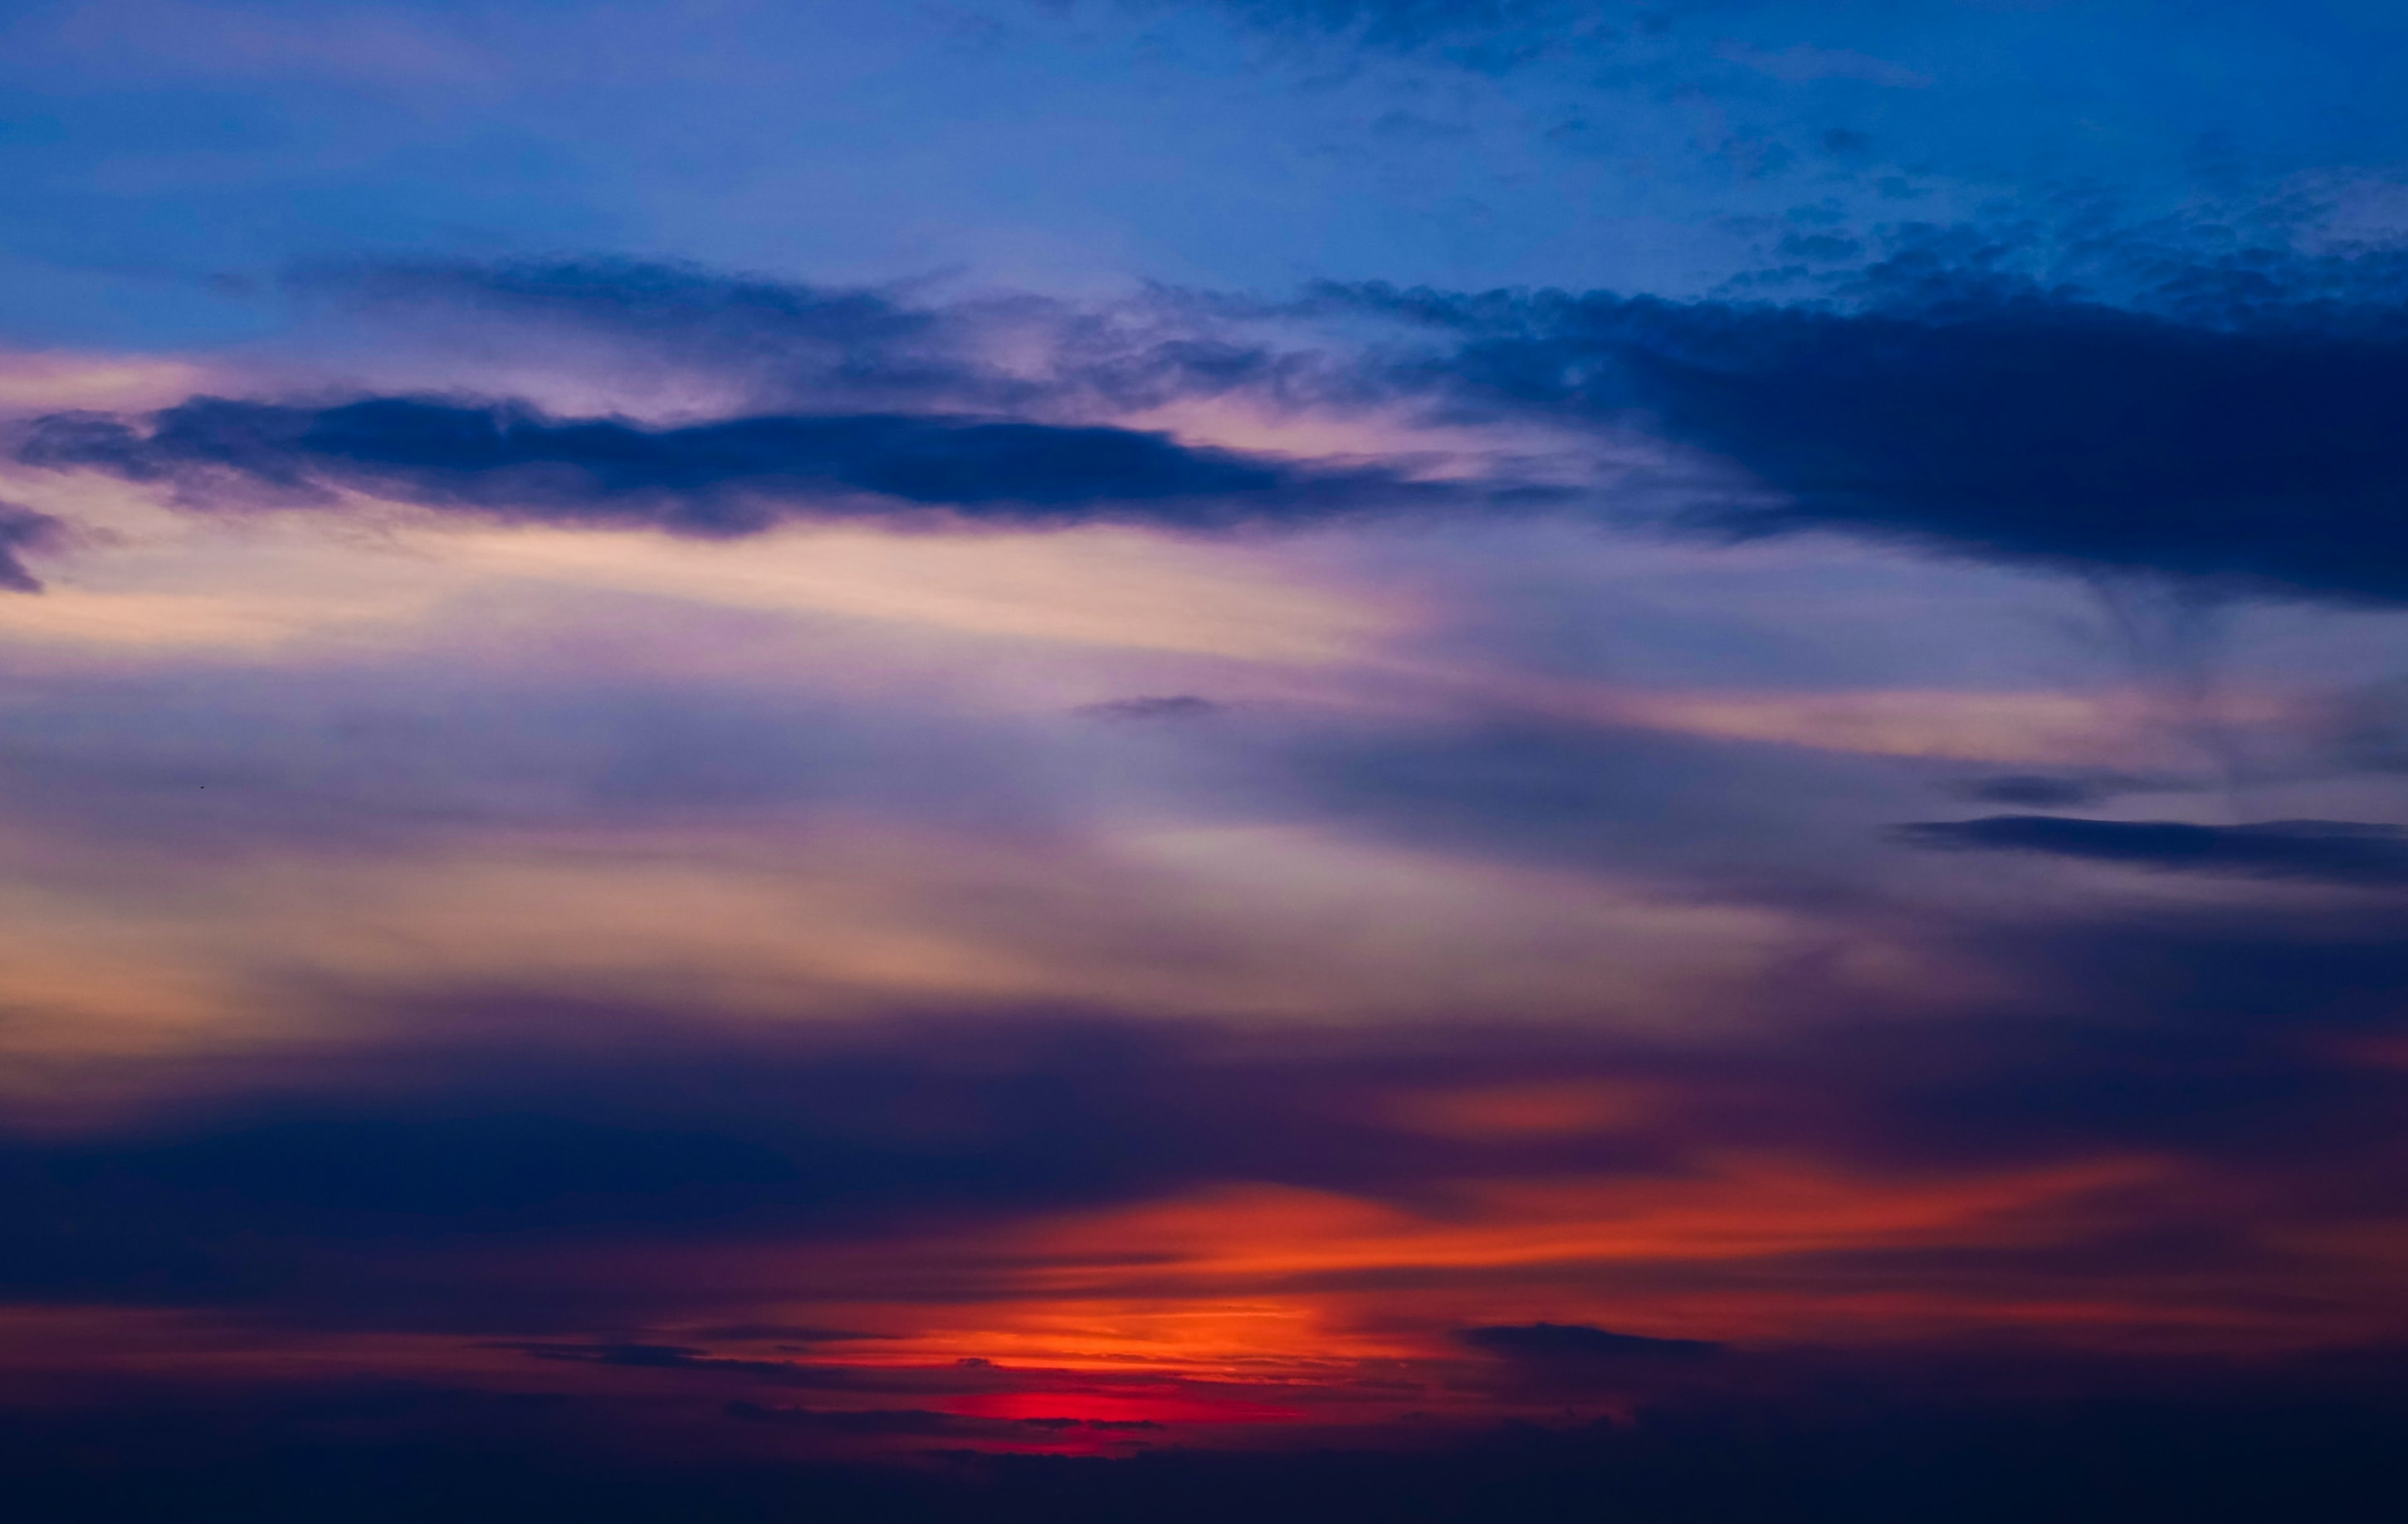 A red and blue cloudy sunset